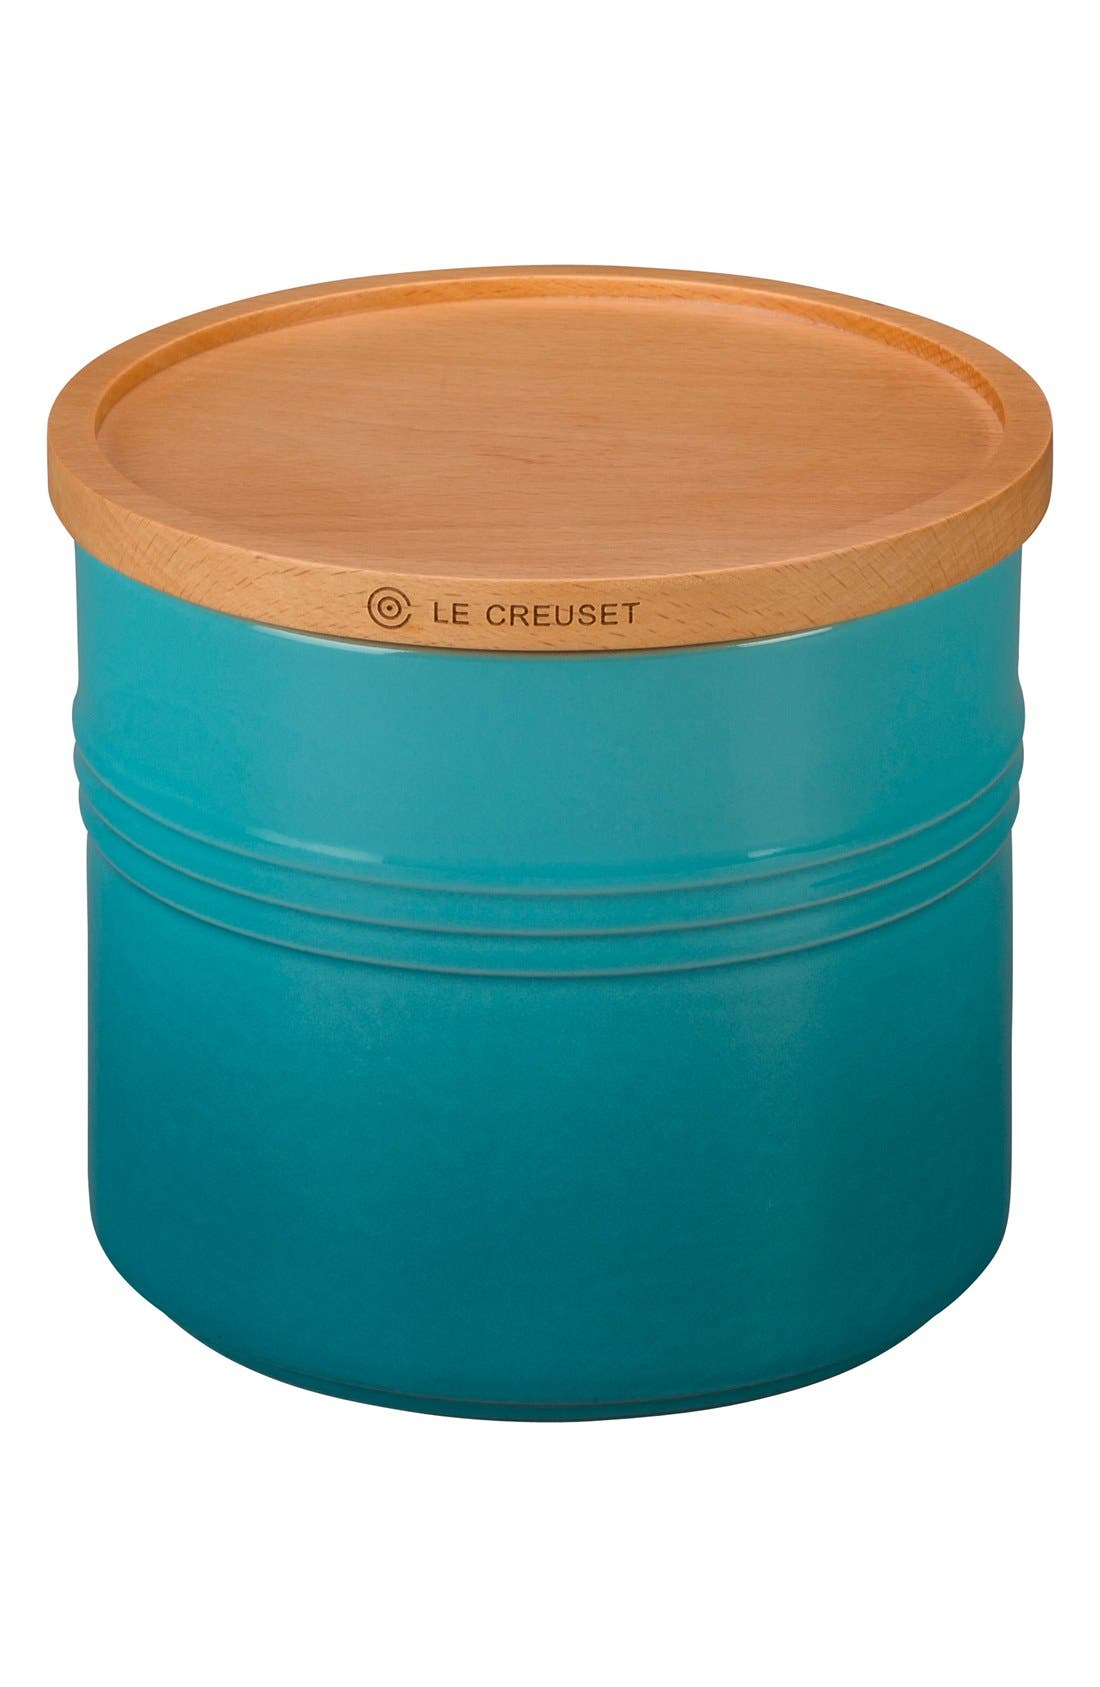 Alternate Image 1 Selected - Le Creuset Glazed Stoneware 1 1/2 Quart Storage Canister with Wooden Lid